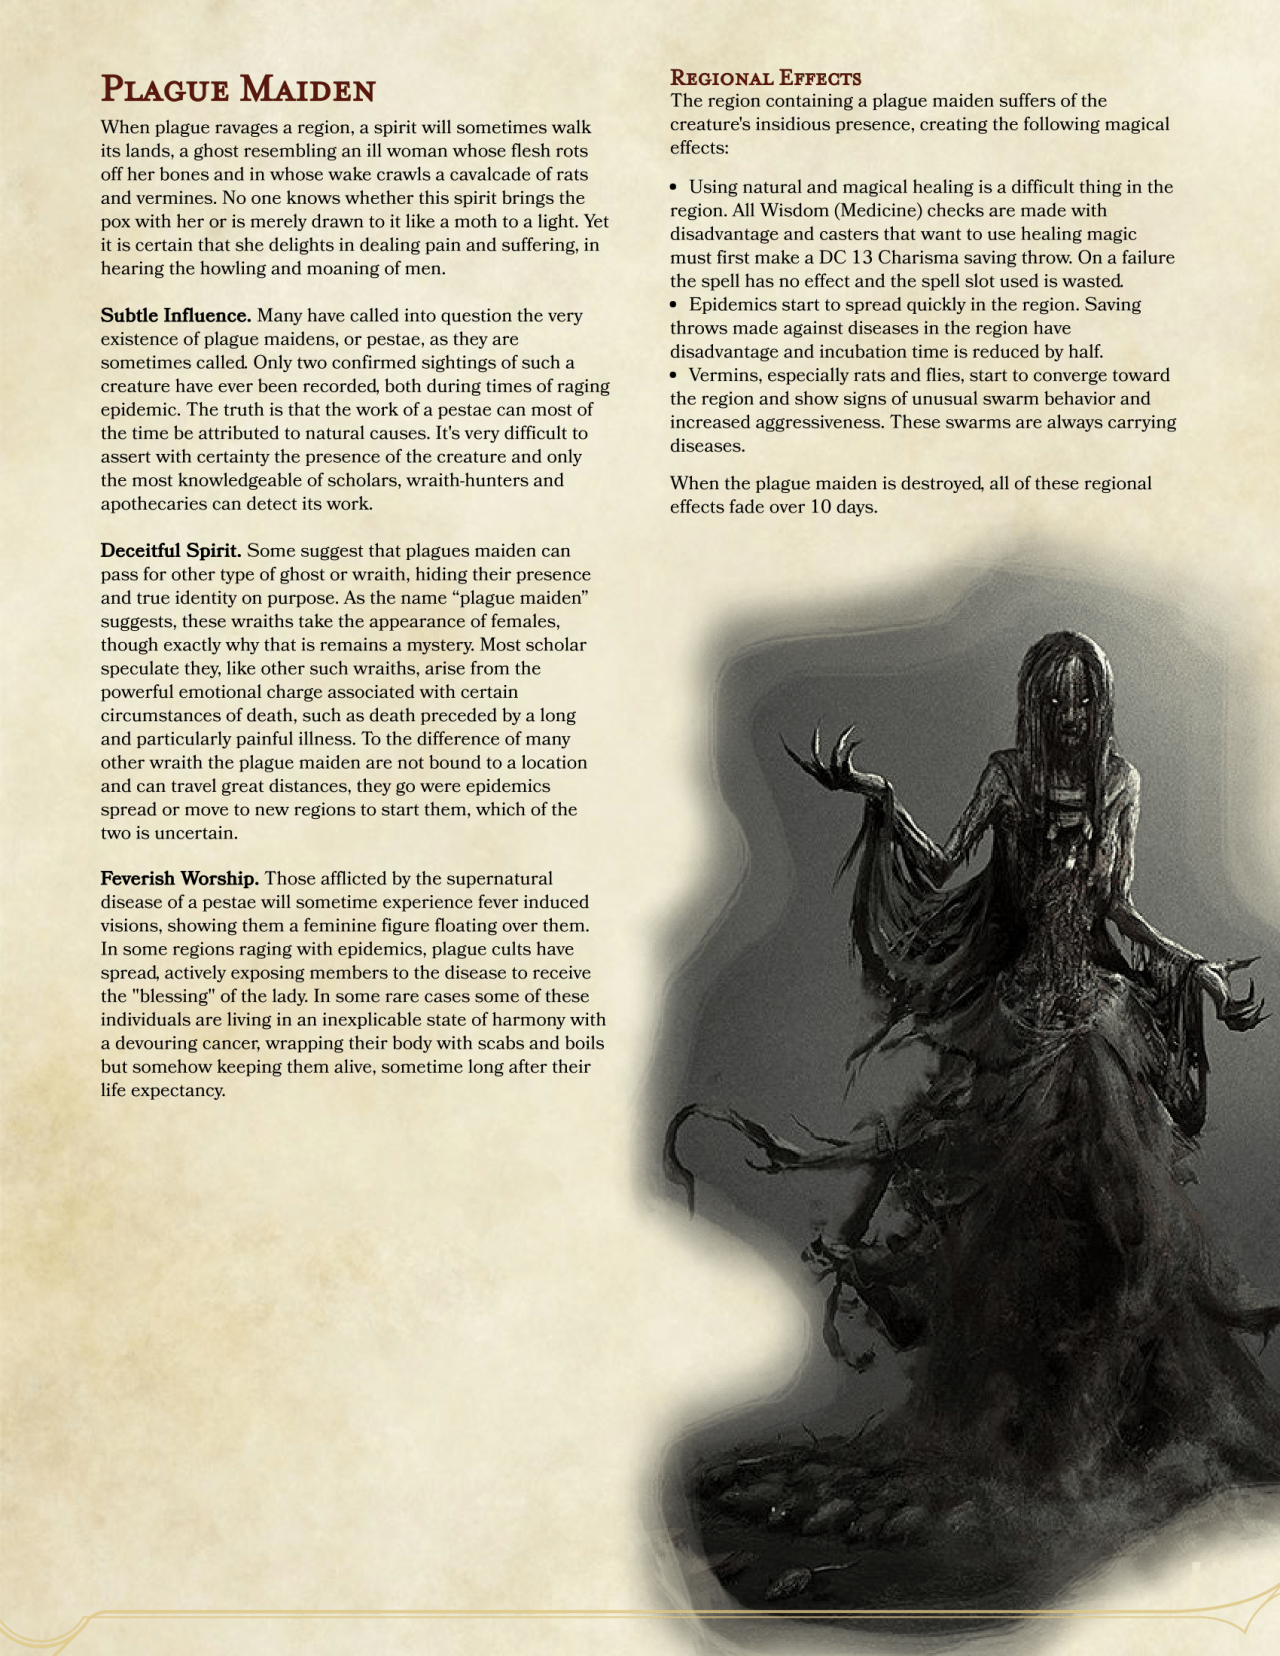 DnD 5e Homebrew — The Witcher monsters Part 2 by Regerem | D&D in